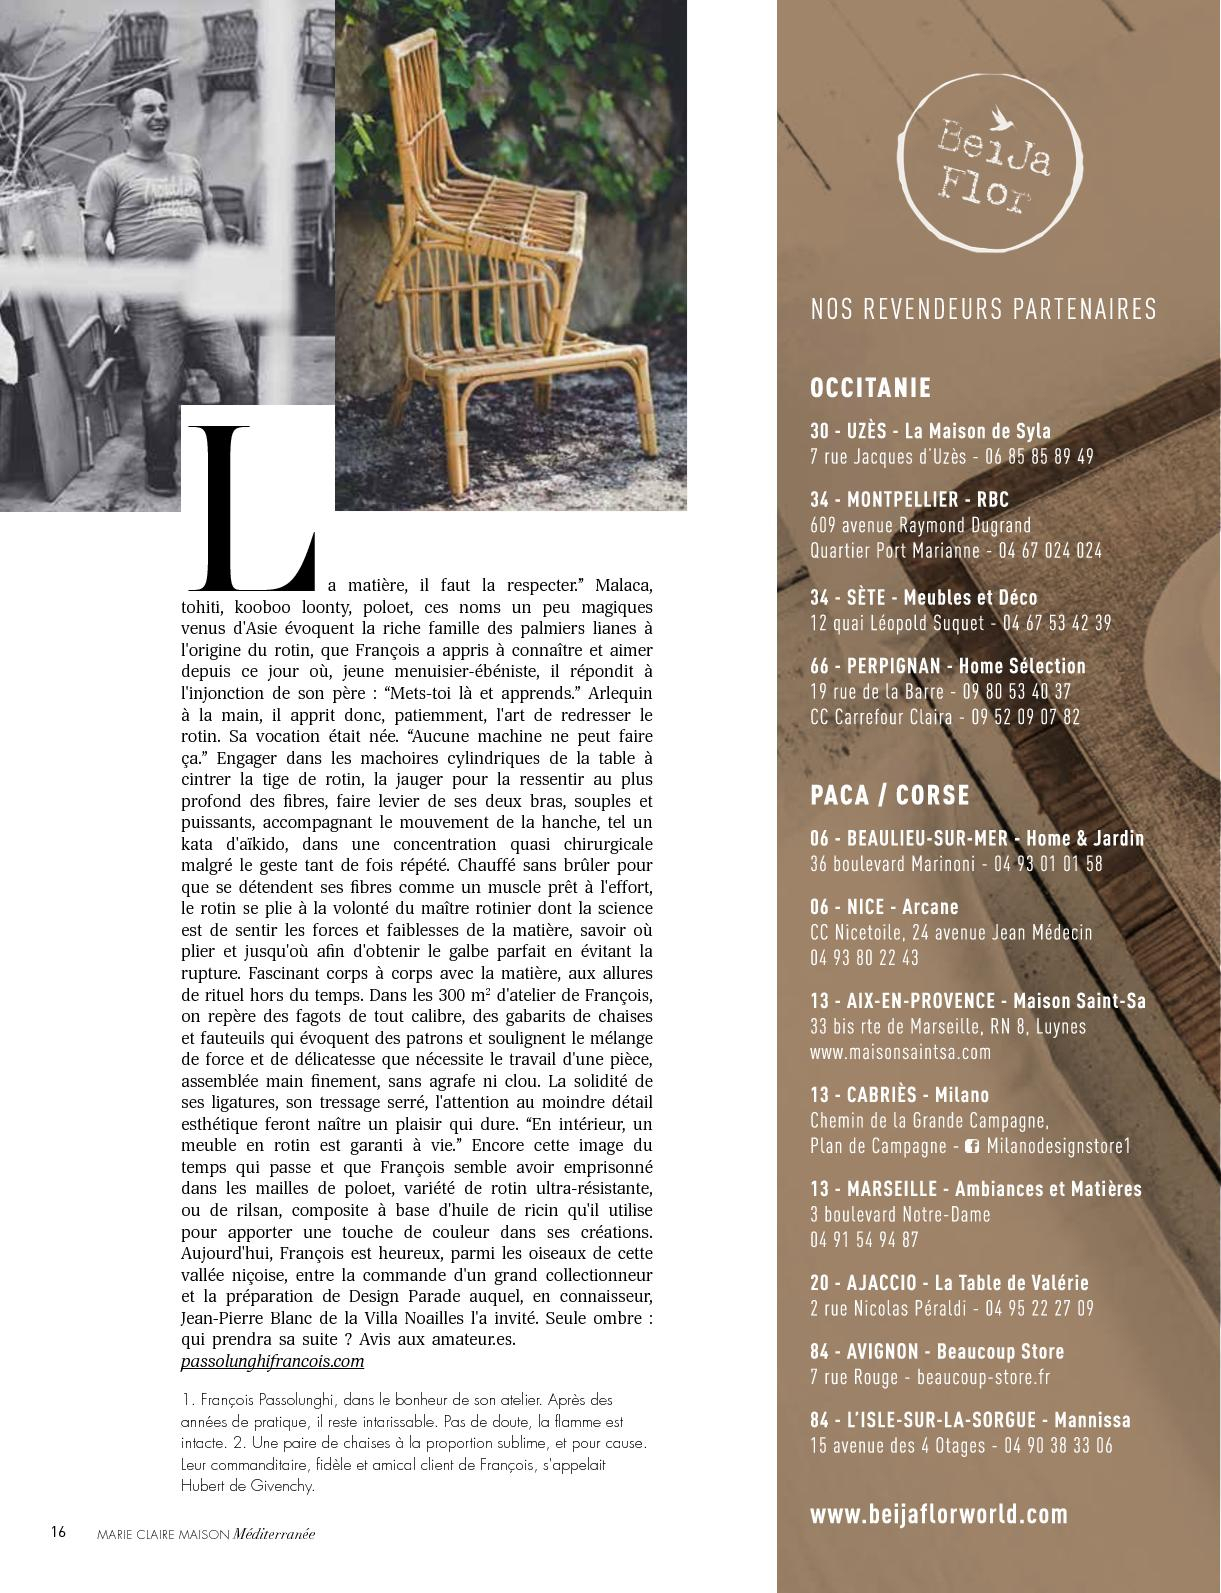 Table Exterieur Resine Inspirant N°502 Marie Claire Maison Juillet Aout 2018 Calameo Downloader Of 36 Charmant Table Exterieur Resine